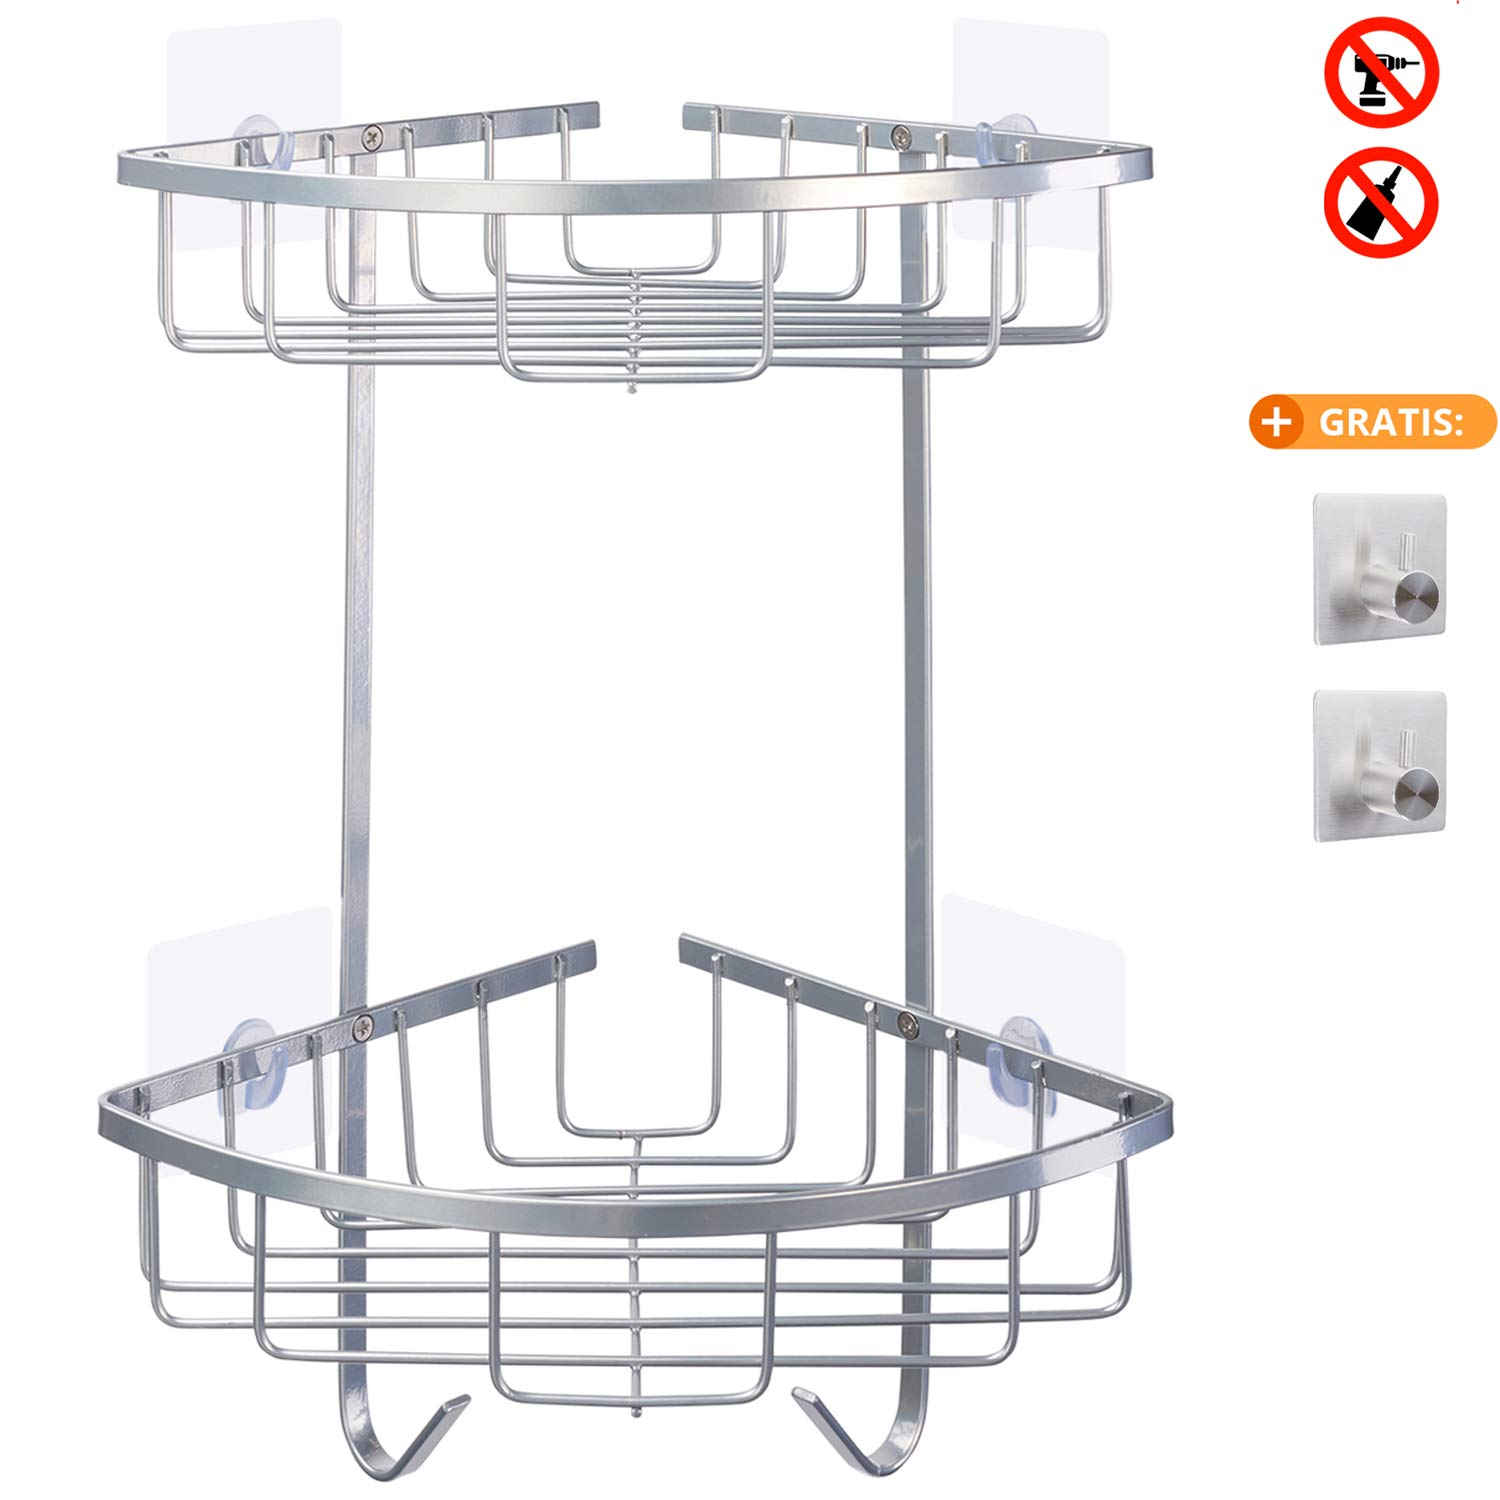 Bathroom Shower Corner Storage Shelf Shower Caddy Holder Rack Organizer New VNN